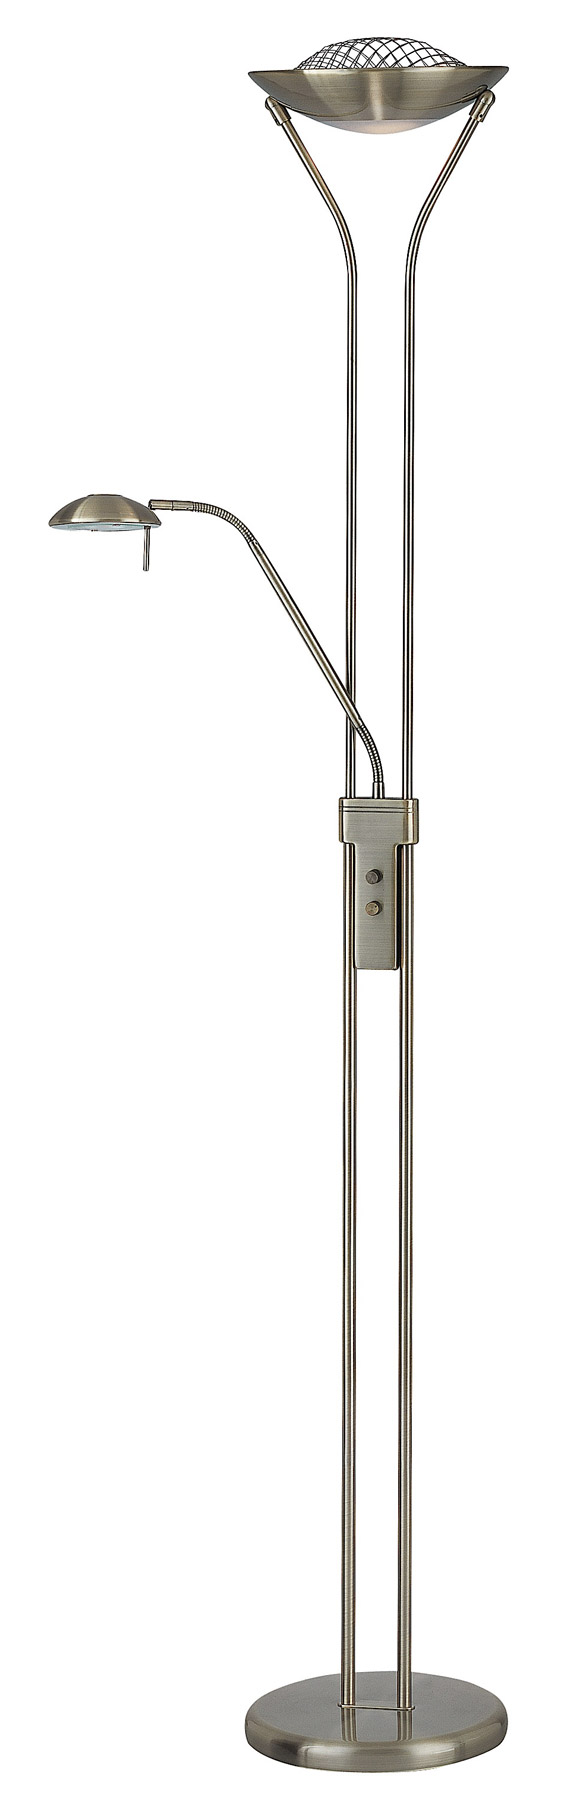 Lite Source Ls 80984ab Duality Torchiere Floor Lamp With Adjustable Reading Light